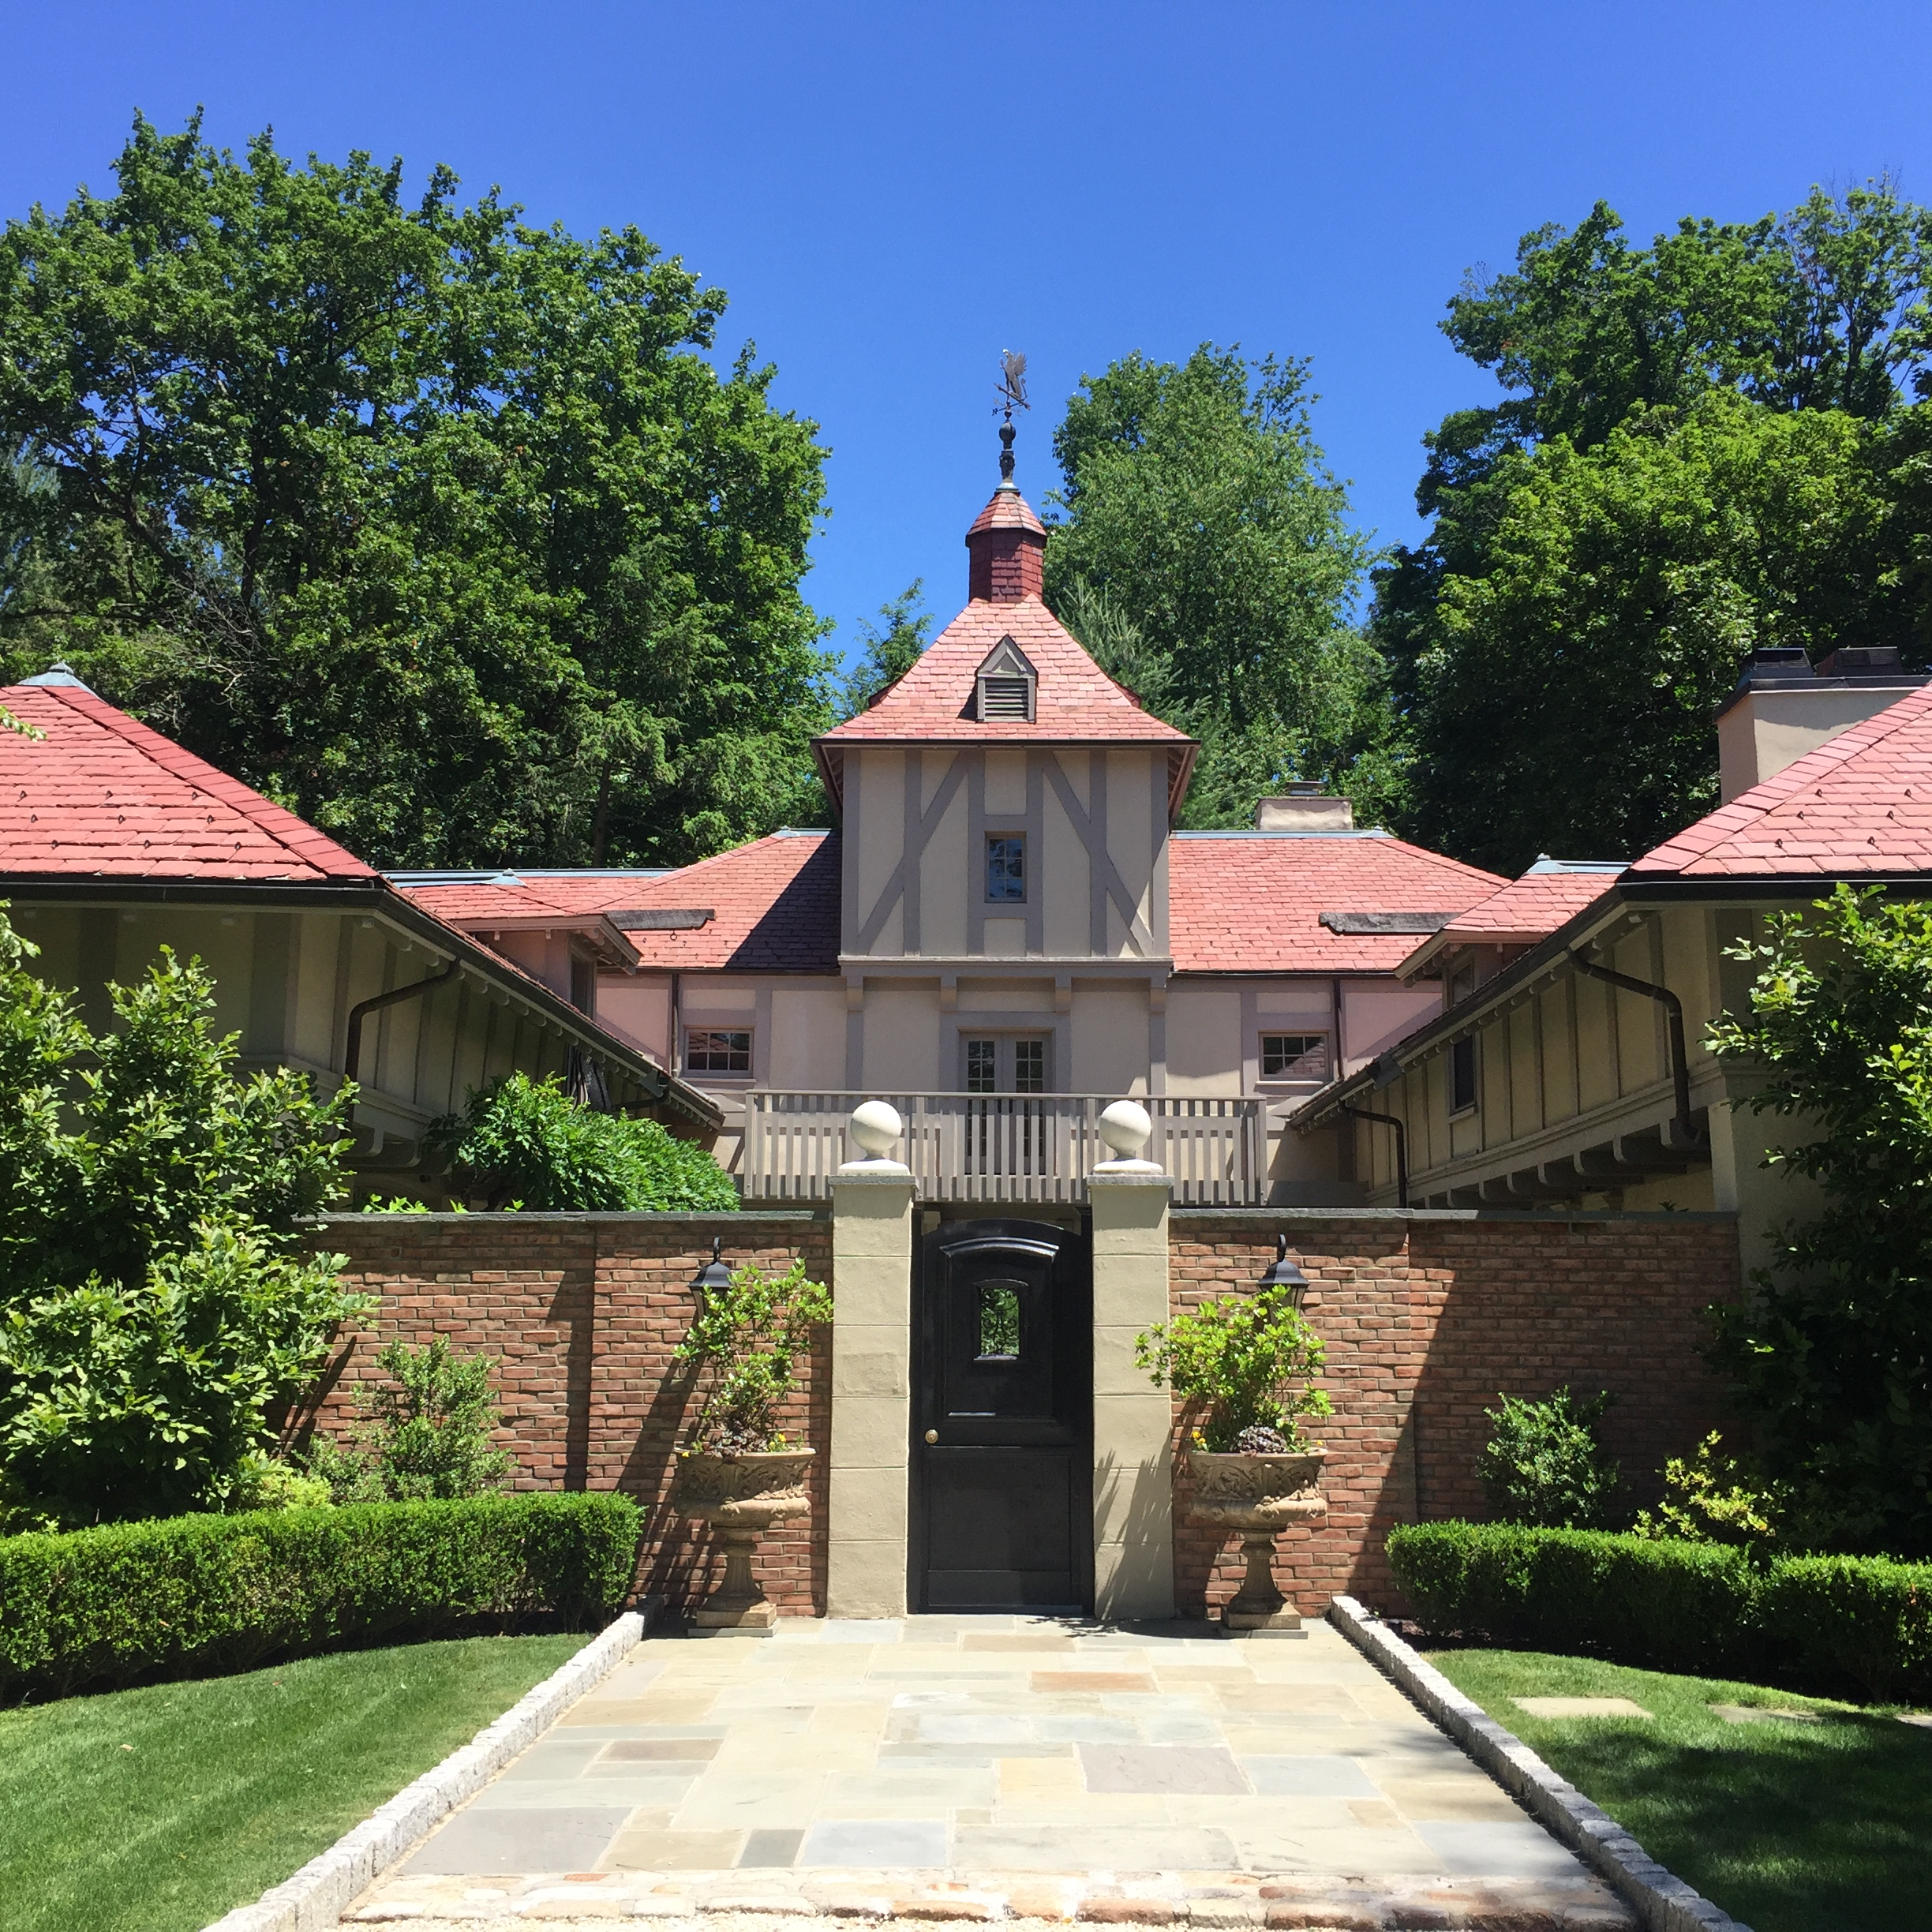 We've provided concierge renovation services, ranging from slate replacement and custom carpentry to the installation of a computerized sump pump, for two different owners of this historic Bryn Mawr estate. We've even designed and installed a custom weathervane, after the original one had been stolen around the crash of 2008.